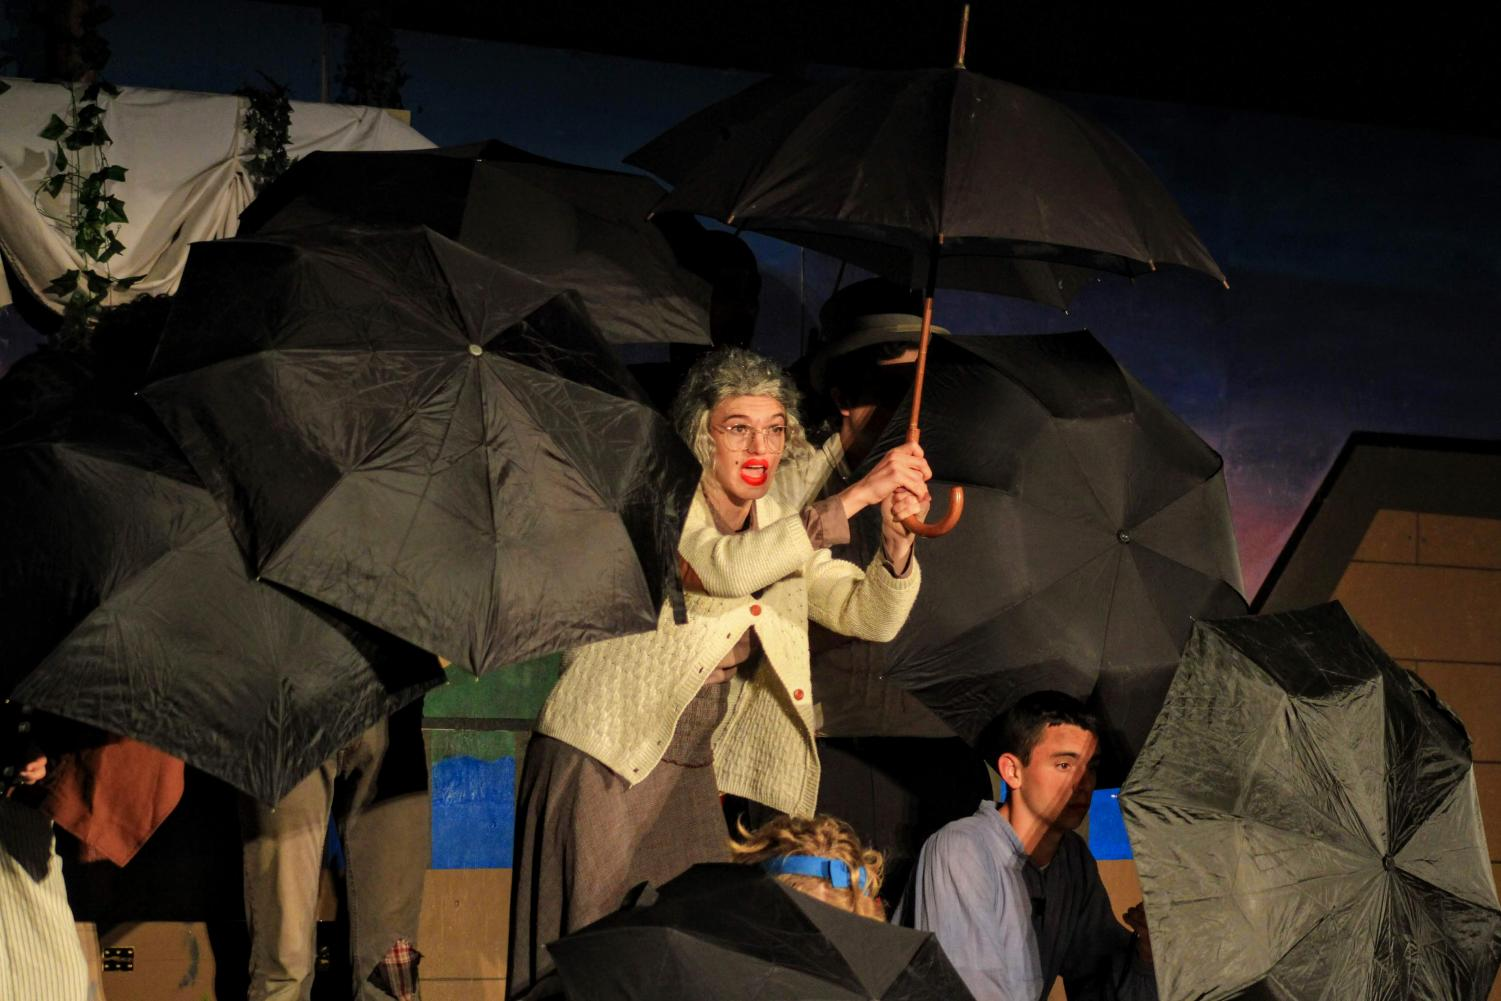 Ms.+Bumbrake+opens+her+umbrella+as+the+actors+perform+a+very+organized+skit.